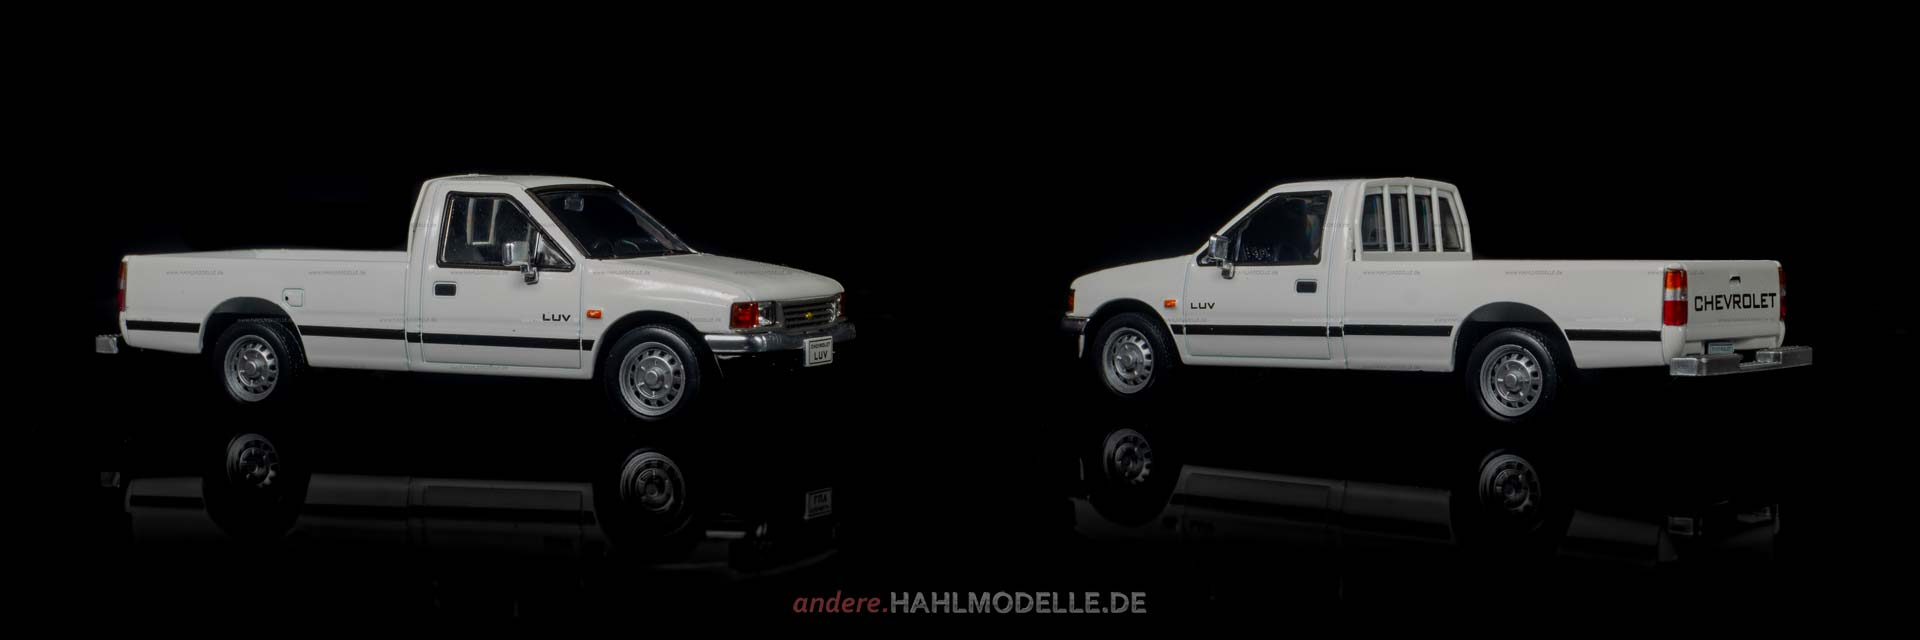 Chevrolet Luv | Pickup | Ixo (Opel Collection von Eaglemoss) | 1:43 | www.andere.hahlmodelle.de